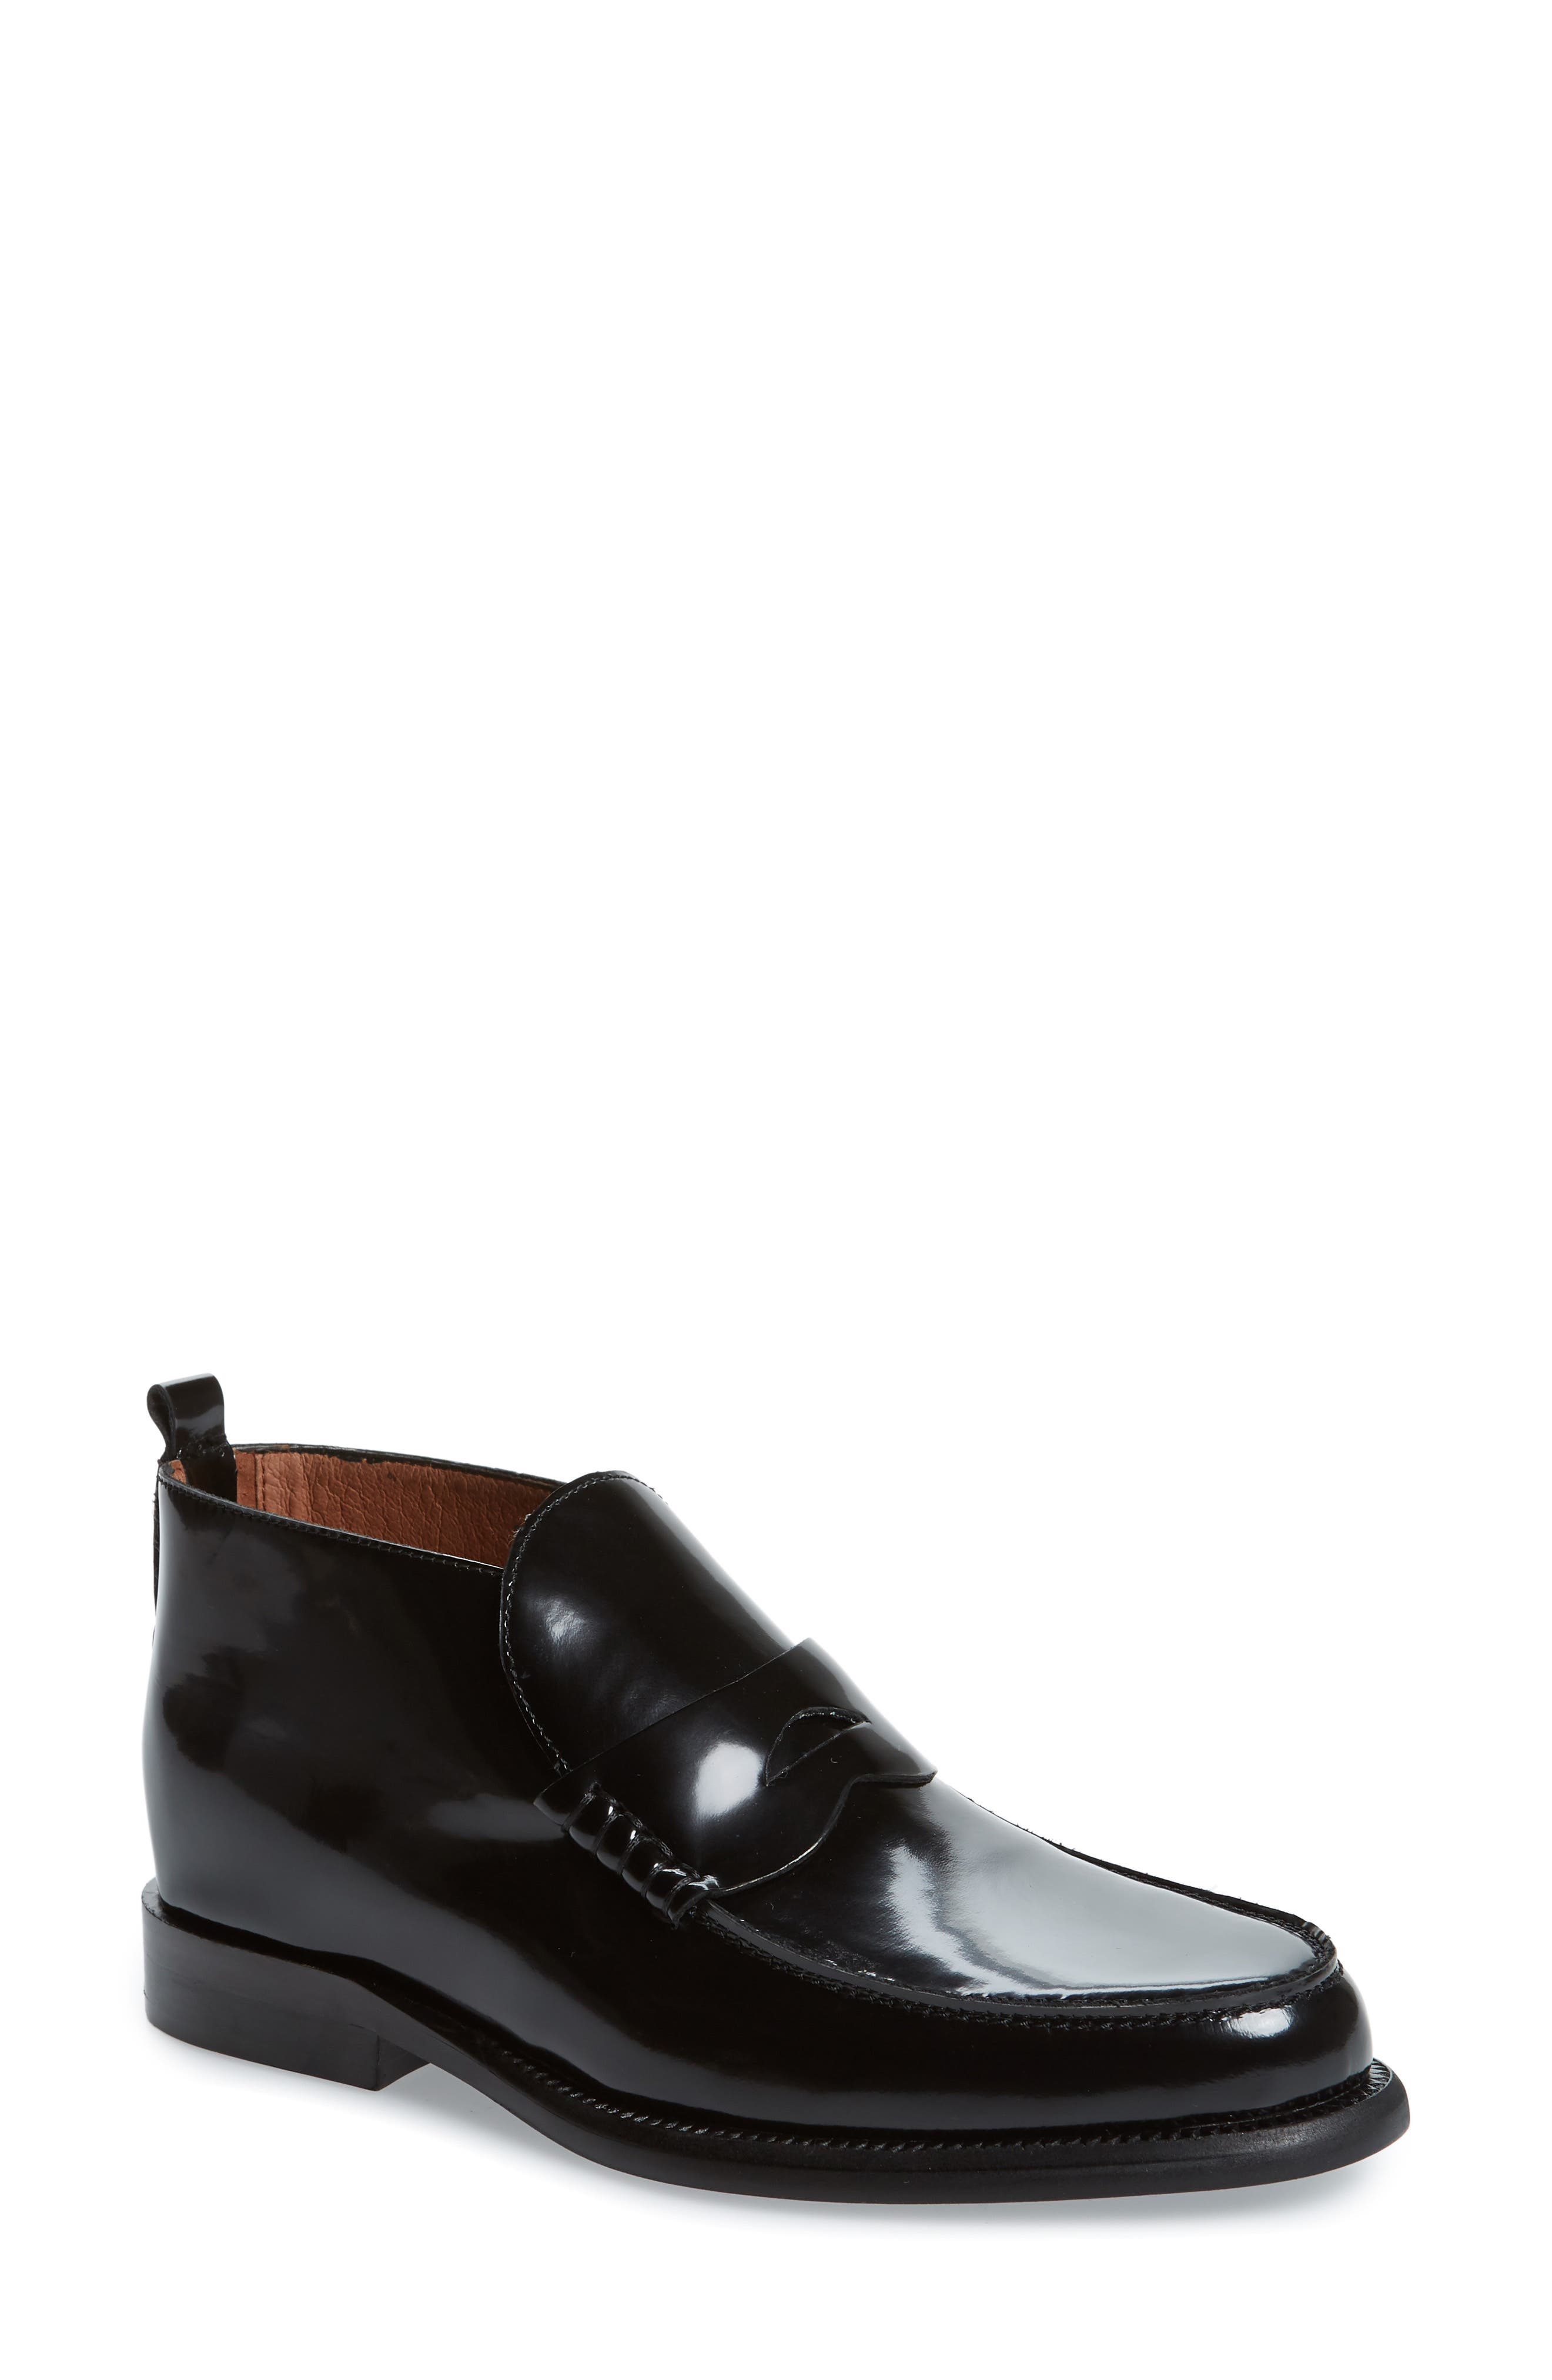 Jeffrey Campbell Marquis Loafer, Black